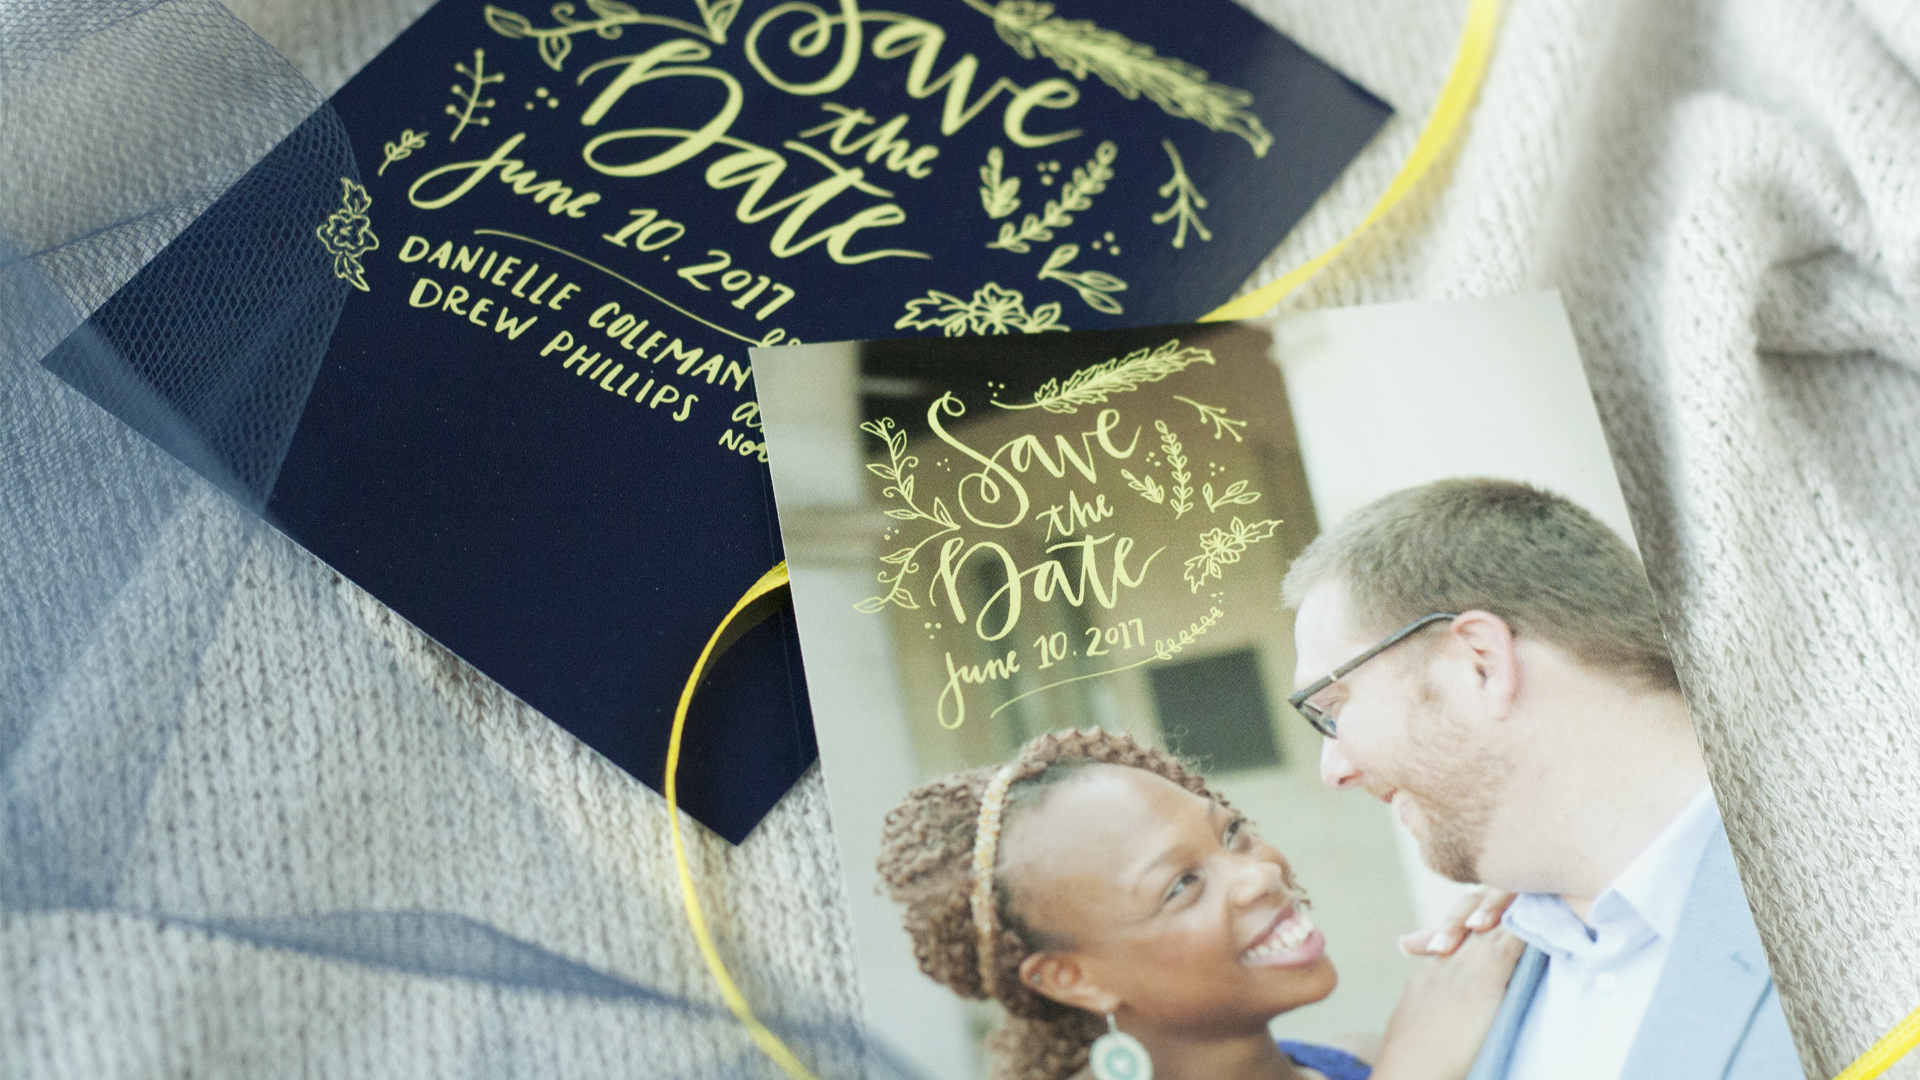 CeindyDoodles Danielle and Drew Save the Date